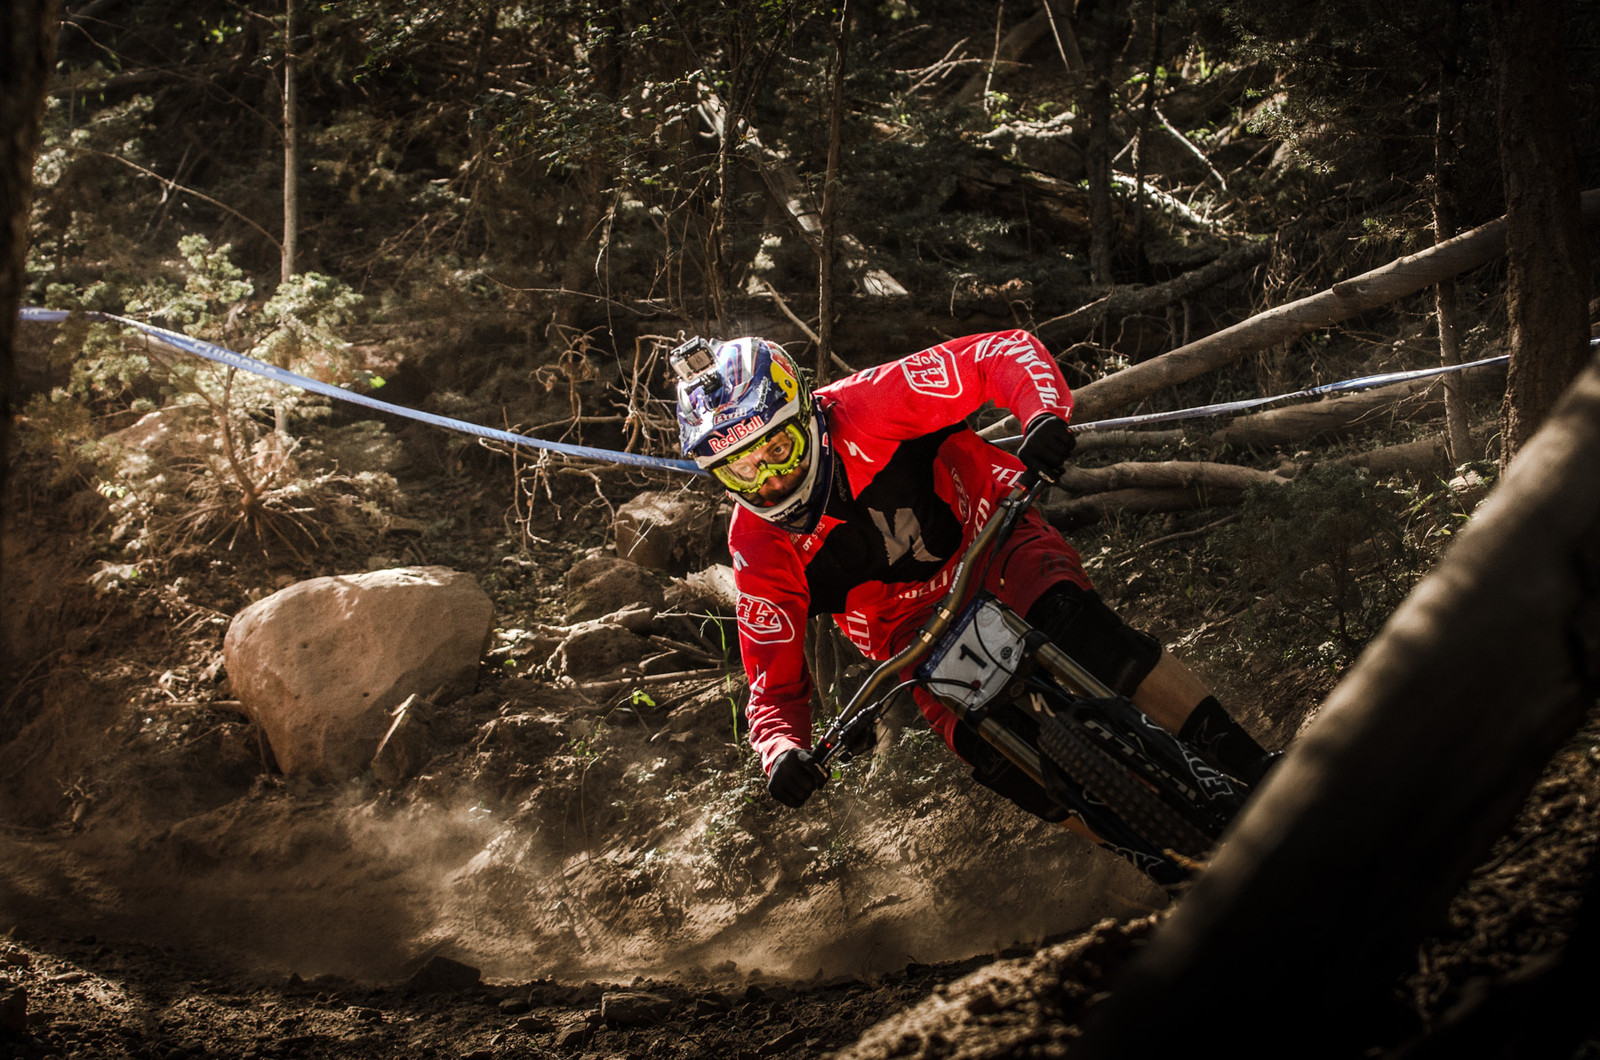 National Champs DH Race Gallery - Aaron Gwin on his Way to Victory - U.S. National Championship Downhill Finals Photos - Mountain Biking Pictures - Vital MTB